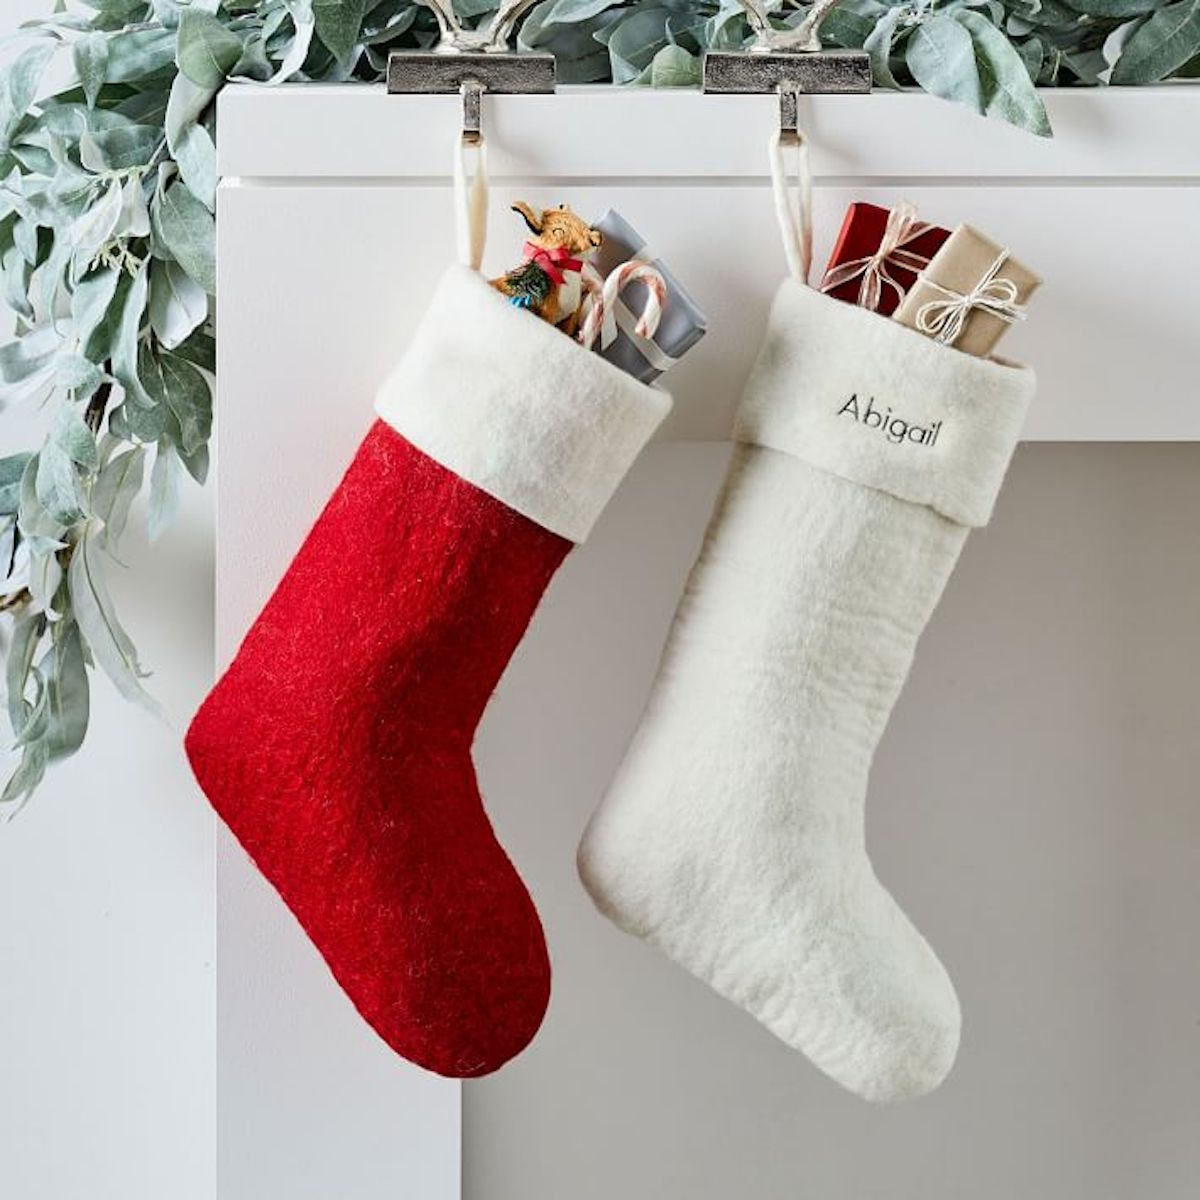 West Elm Felt Christmas Stocking red and white on mantal